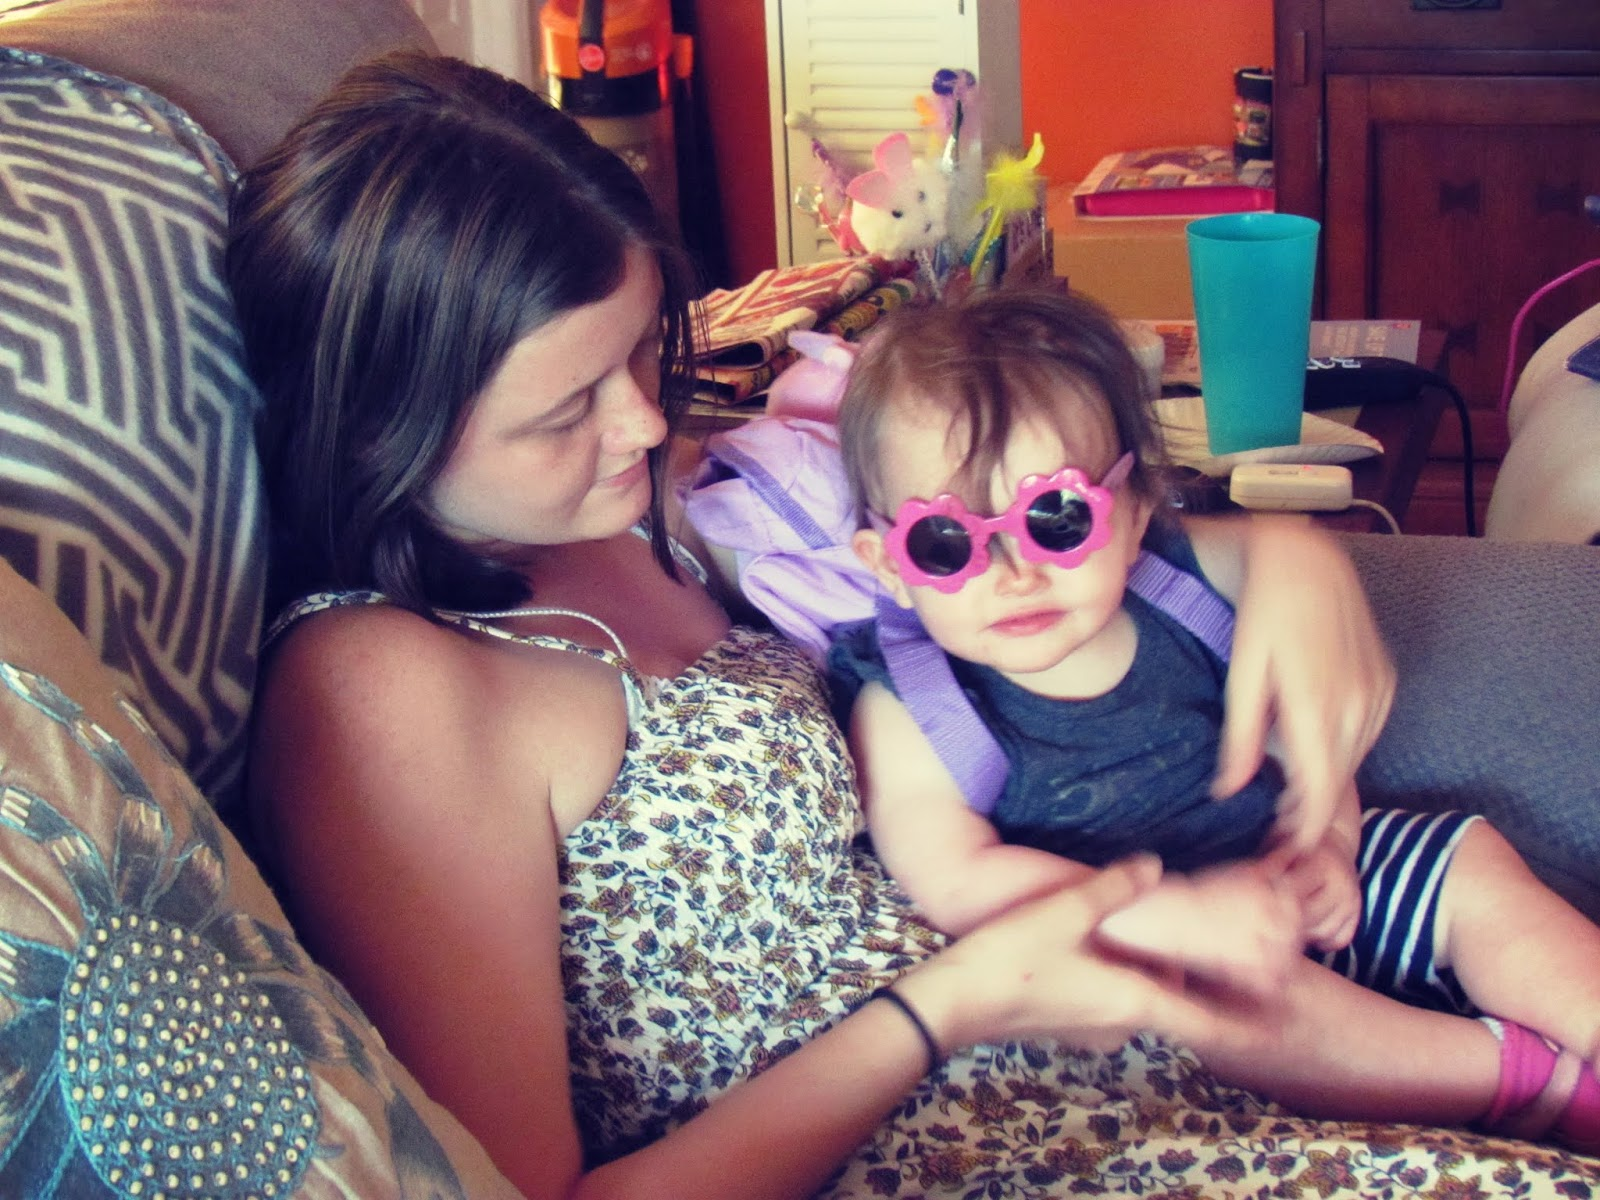 An aunt and niece lay together with baby girl in sunglasses smiling on her birthday